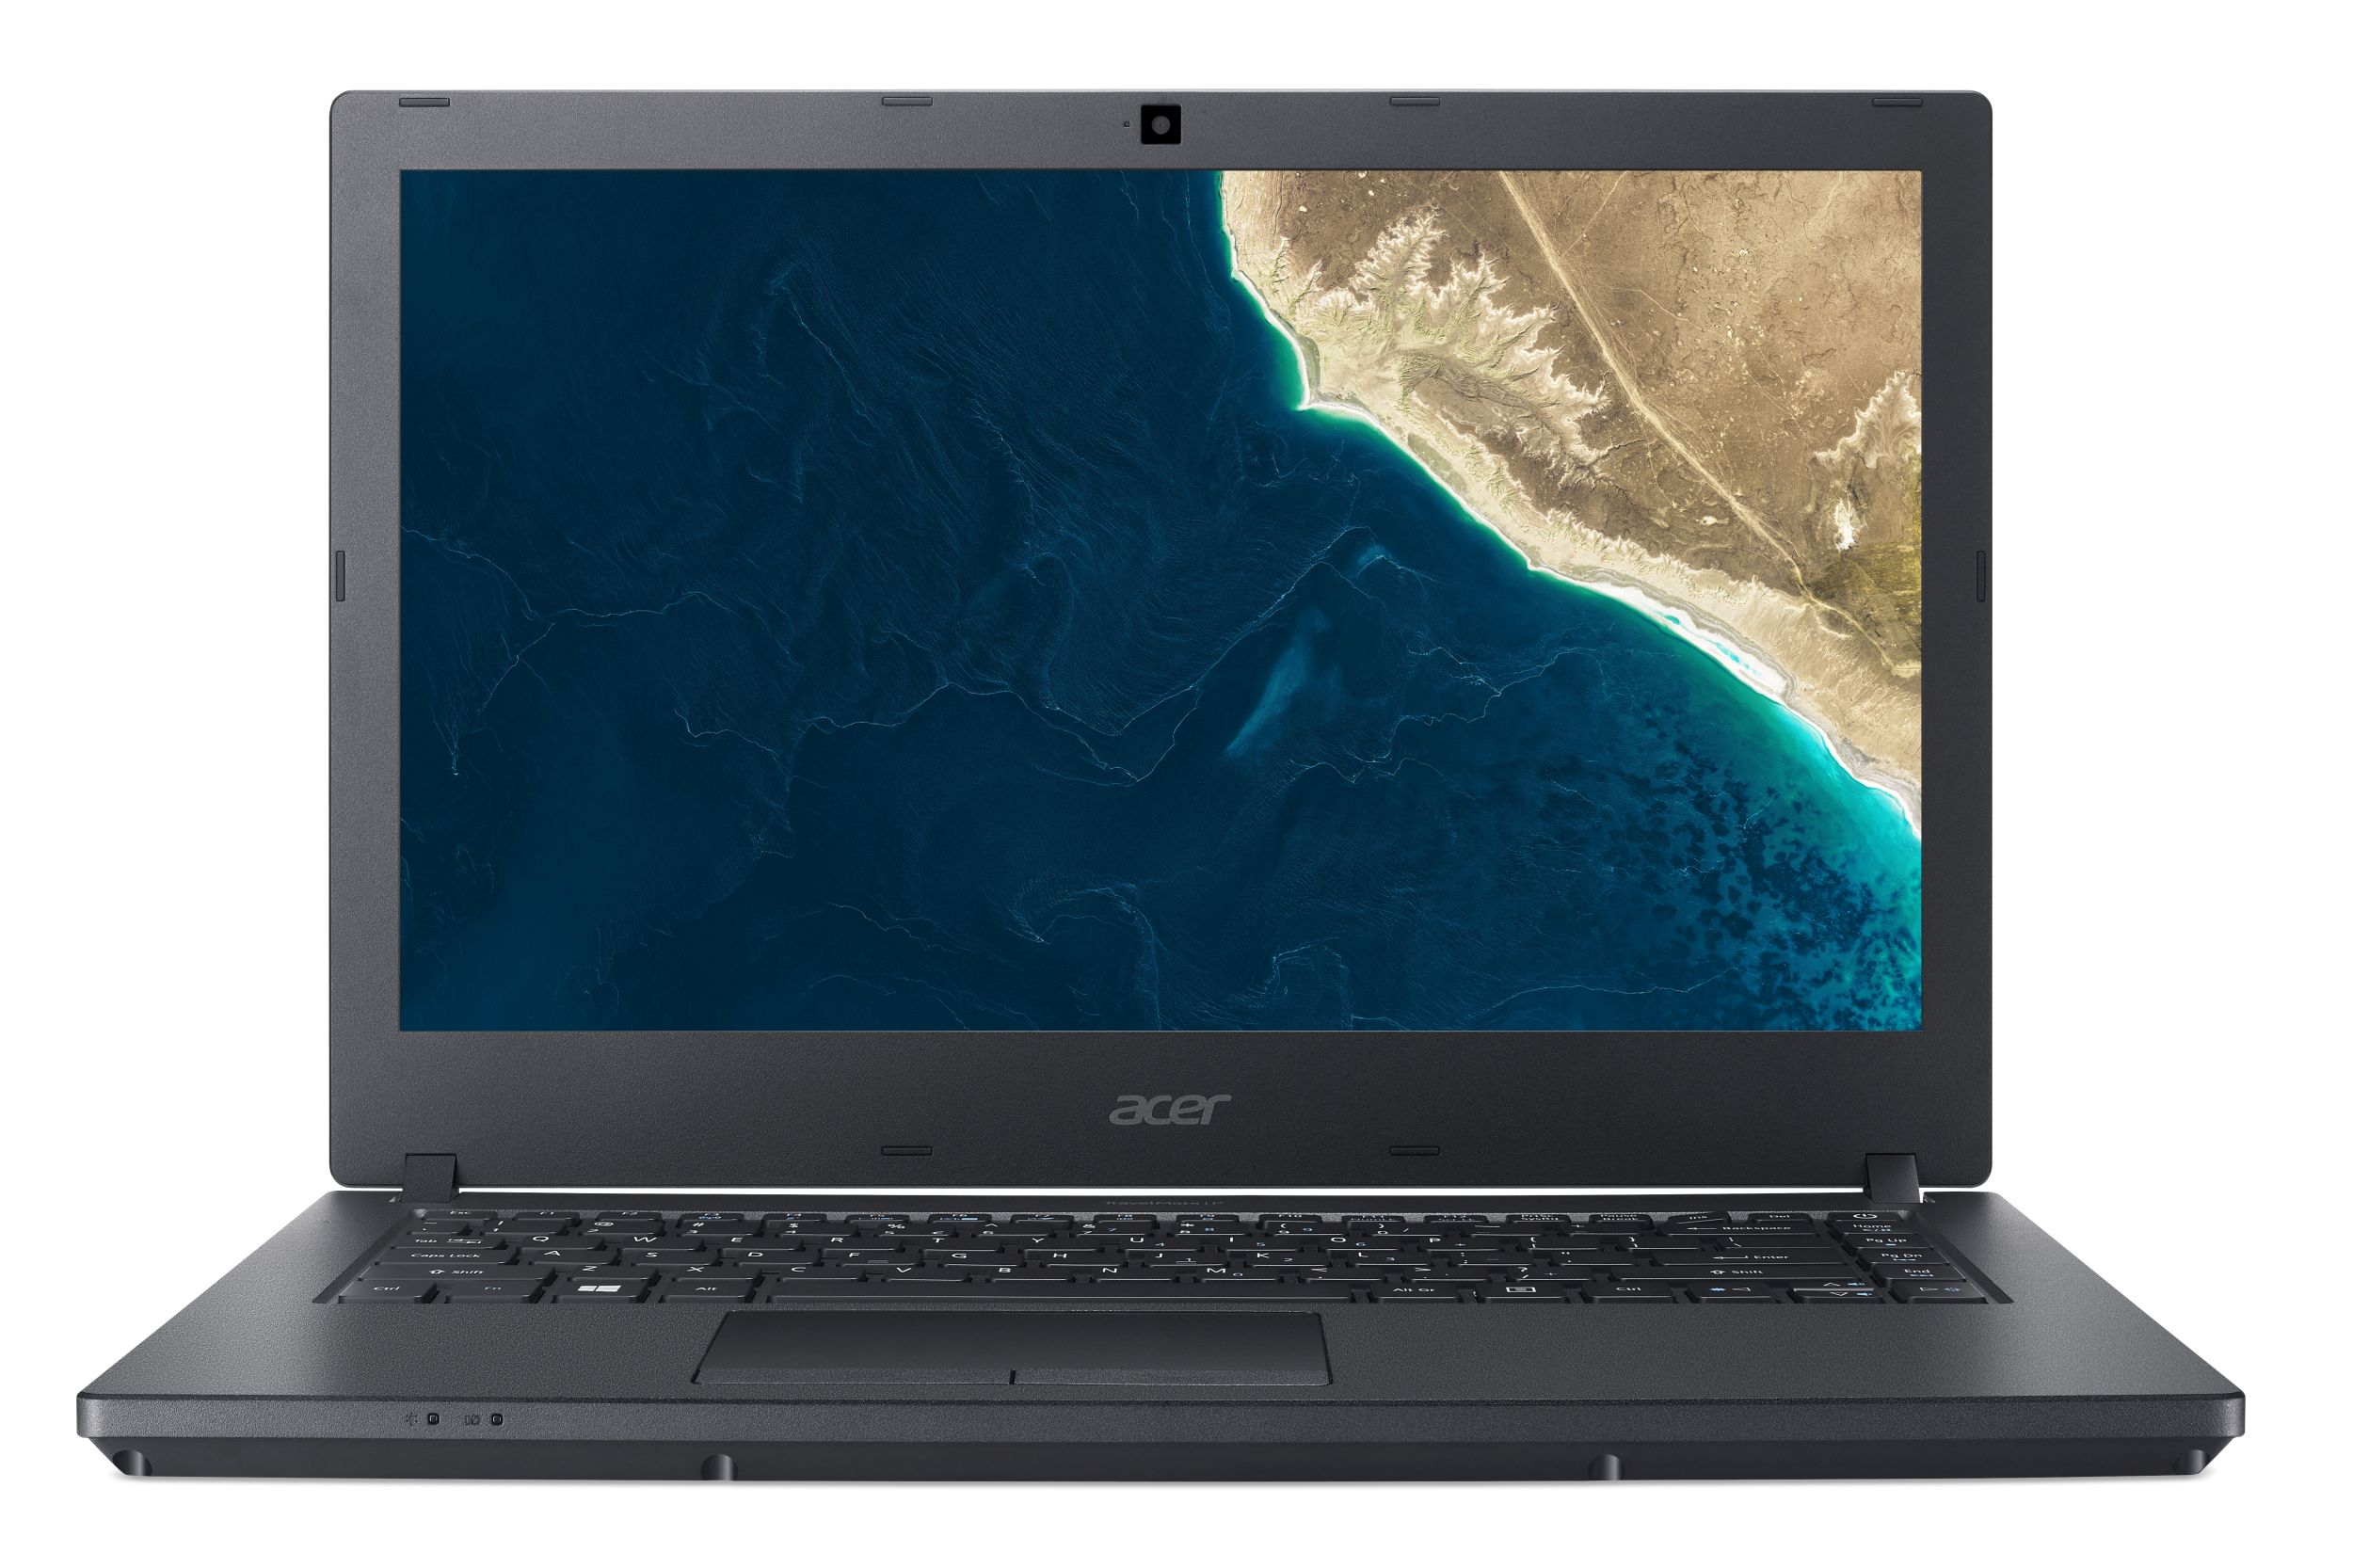 "Acer TravelMate P2410-M-325P i3-7130U/4GB+N/ 256GB SSD+N/HD Graphics/14.0"" FHD IPS LED matný/BT/W10 Pro/Black"